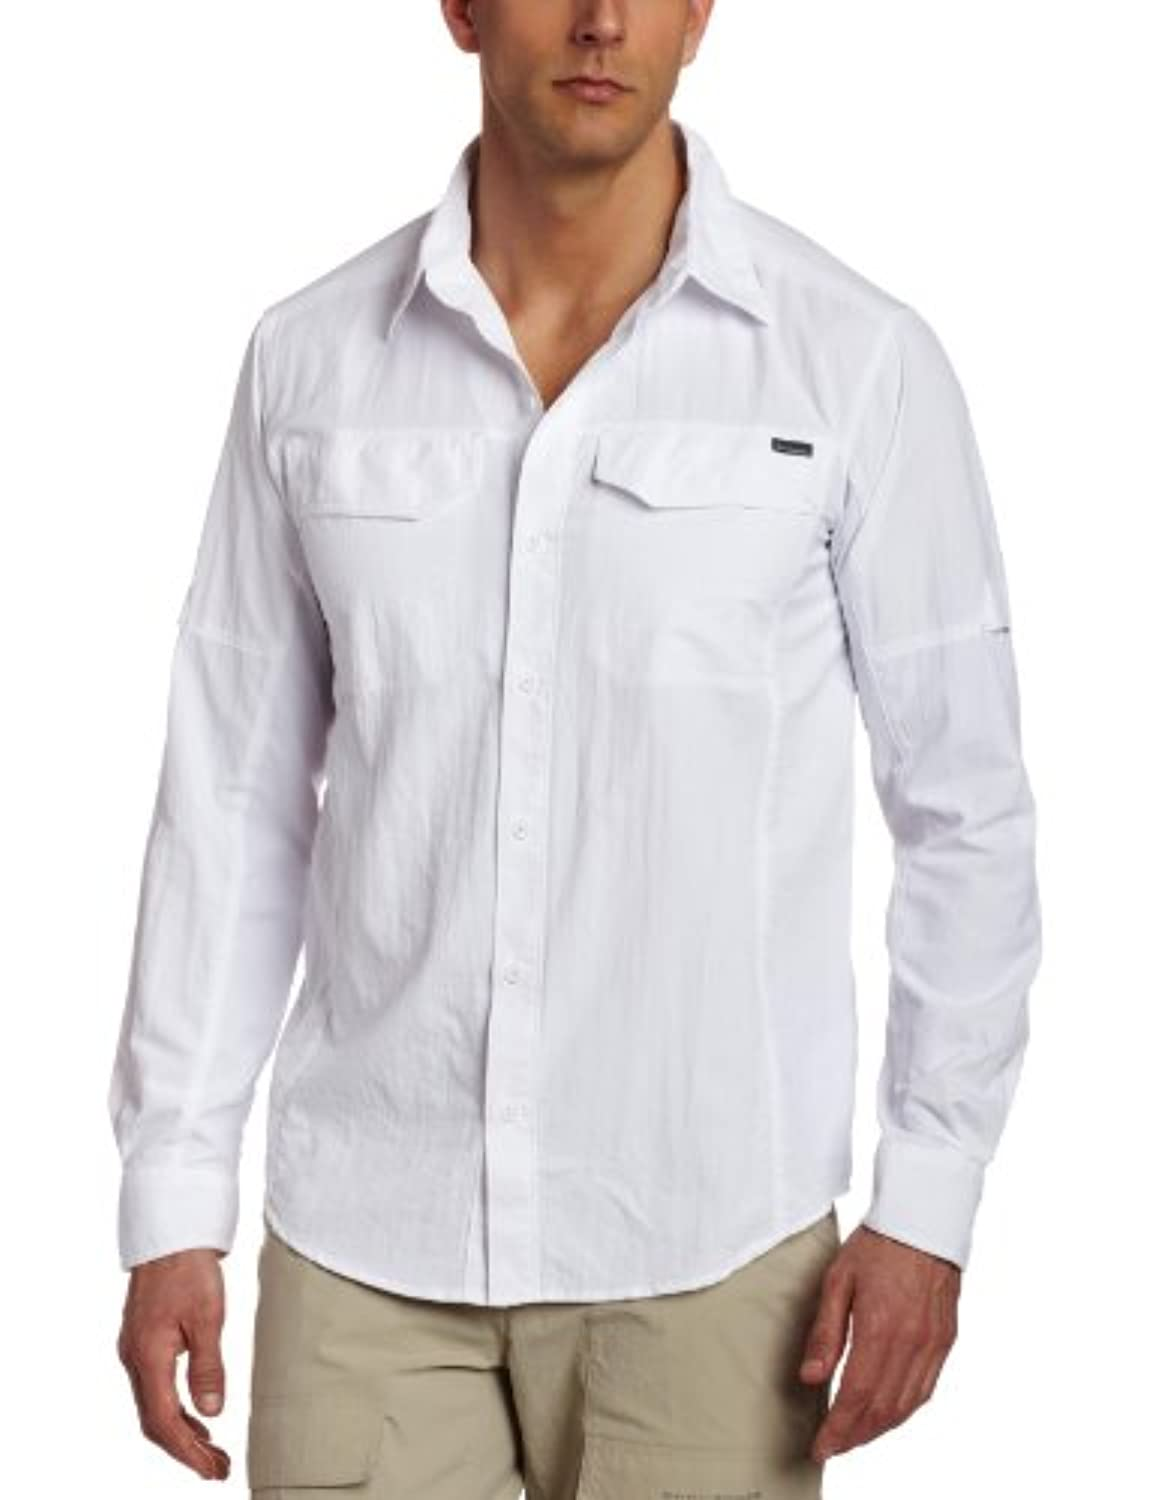 Columbia Silver Ridge Chemise manches longues Homme Blanc FR : XL (Taille Fabricant : XL)